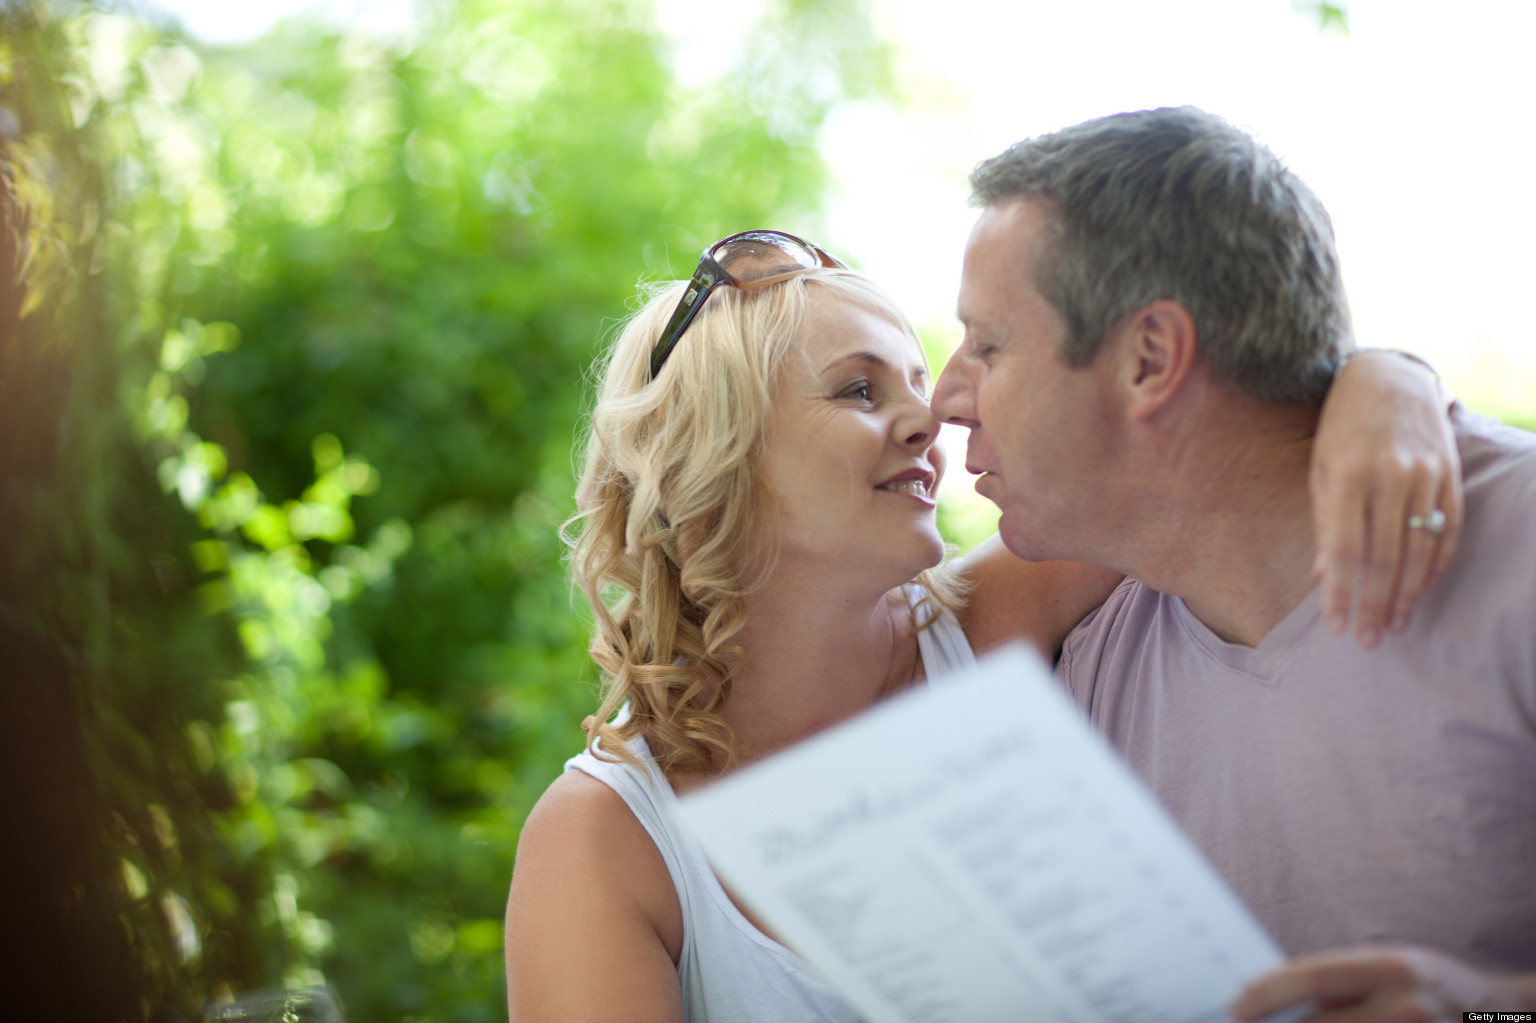 Dating sites for people over 55